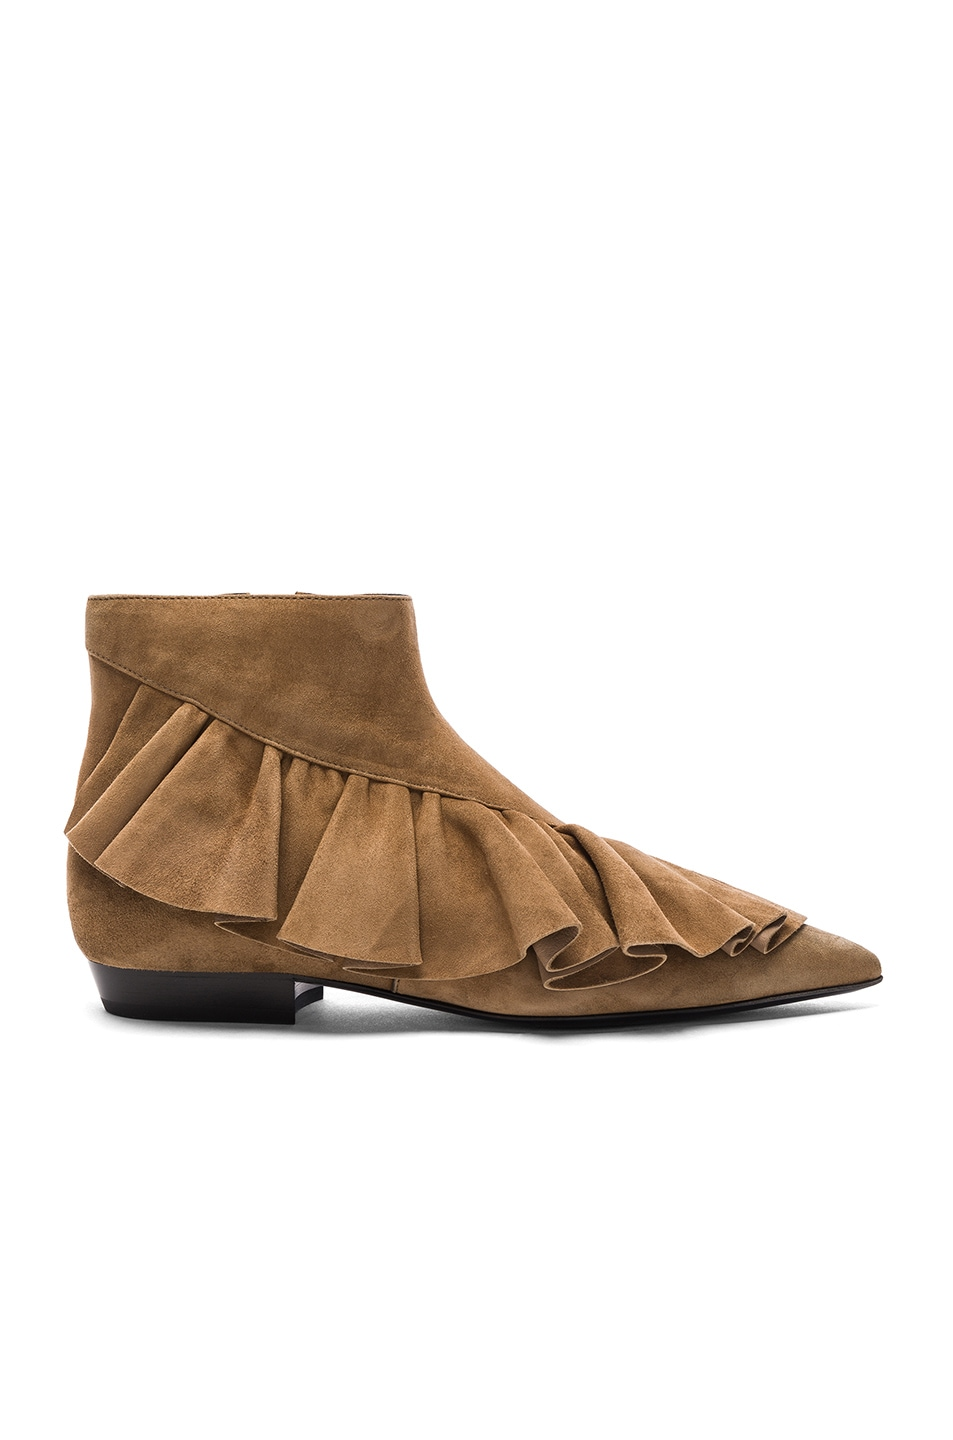 J.W.ANDERSON Ruffle Suede Ankle Boots at FORWARD